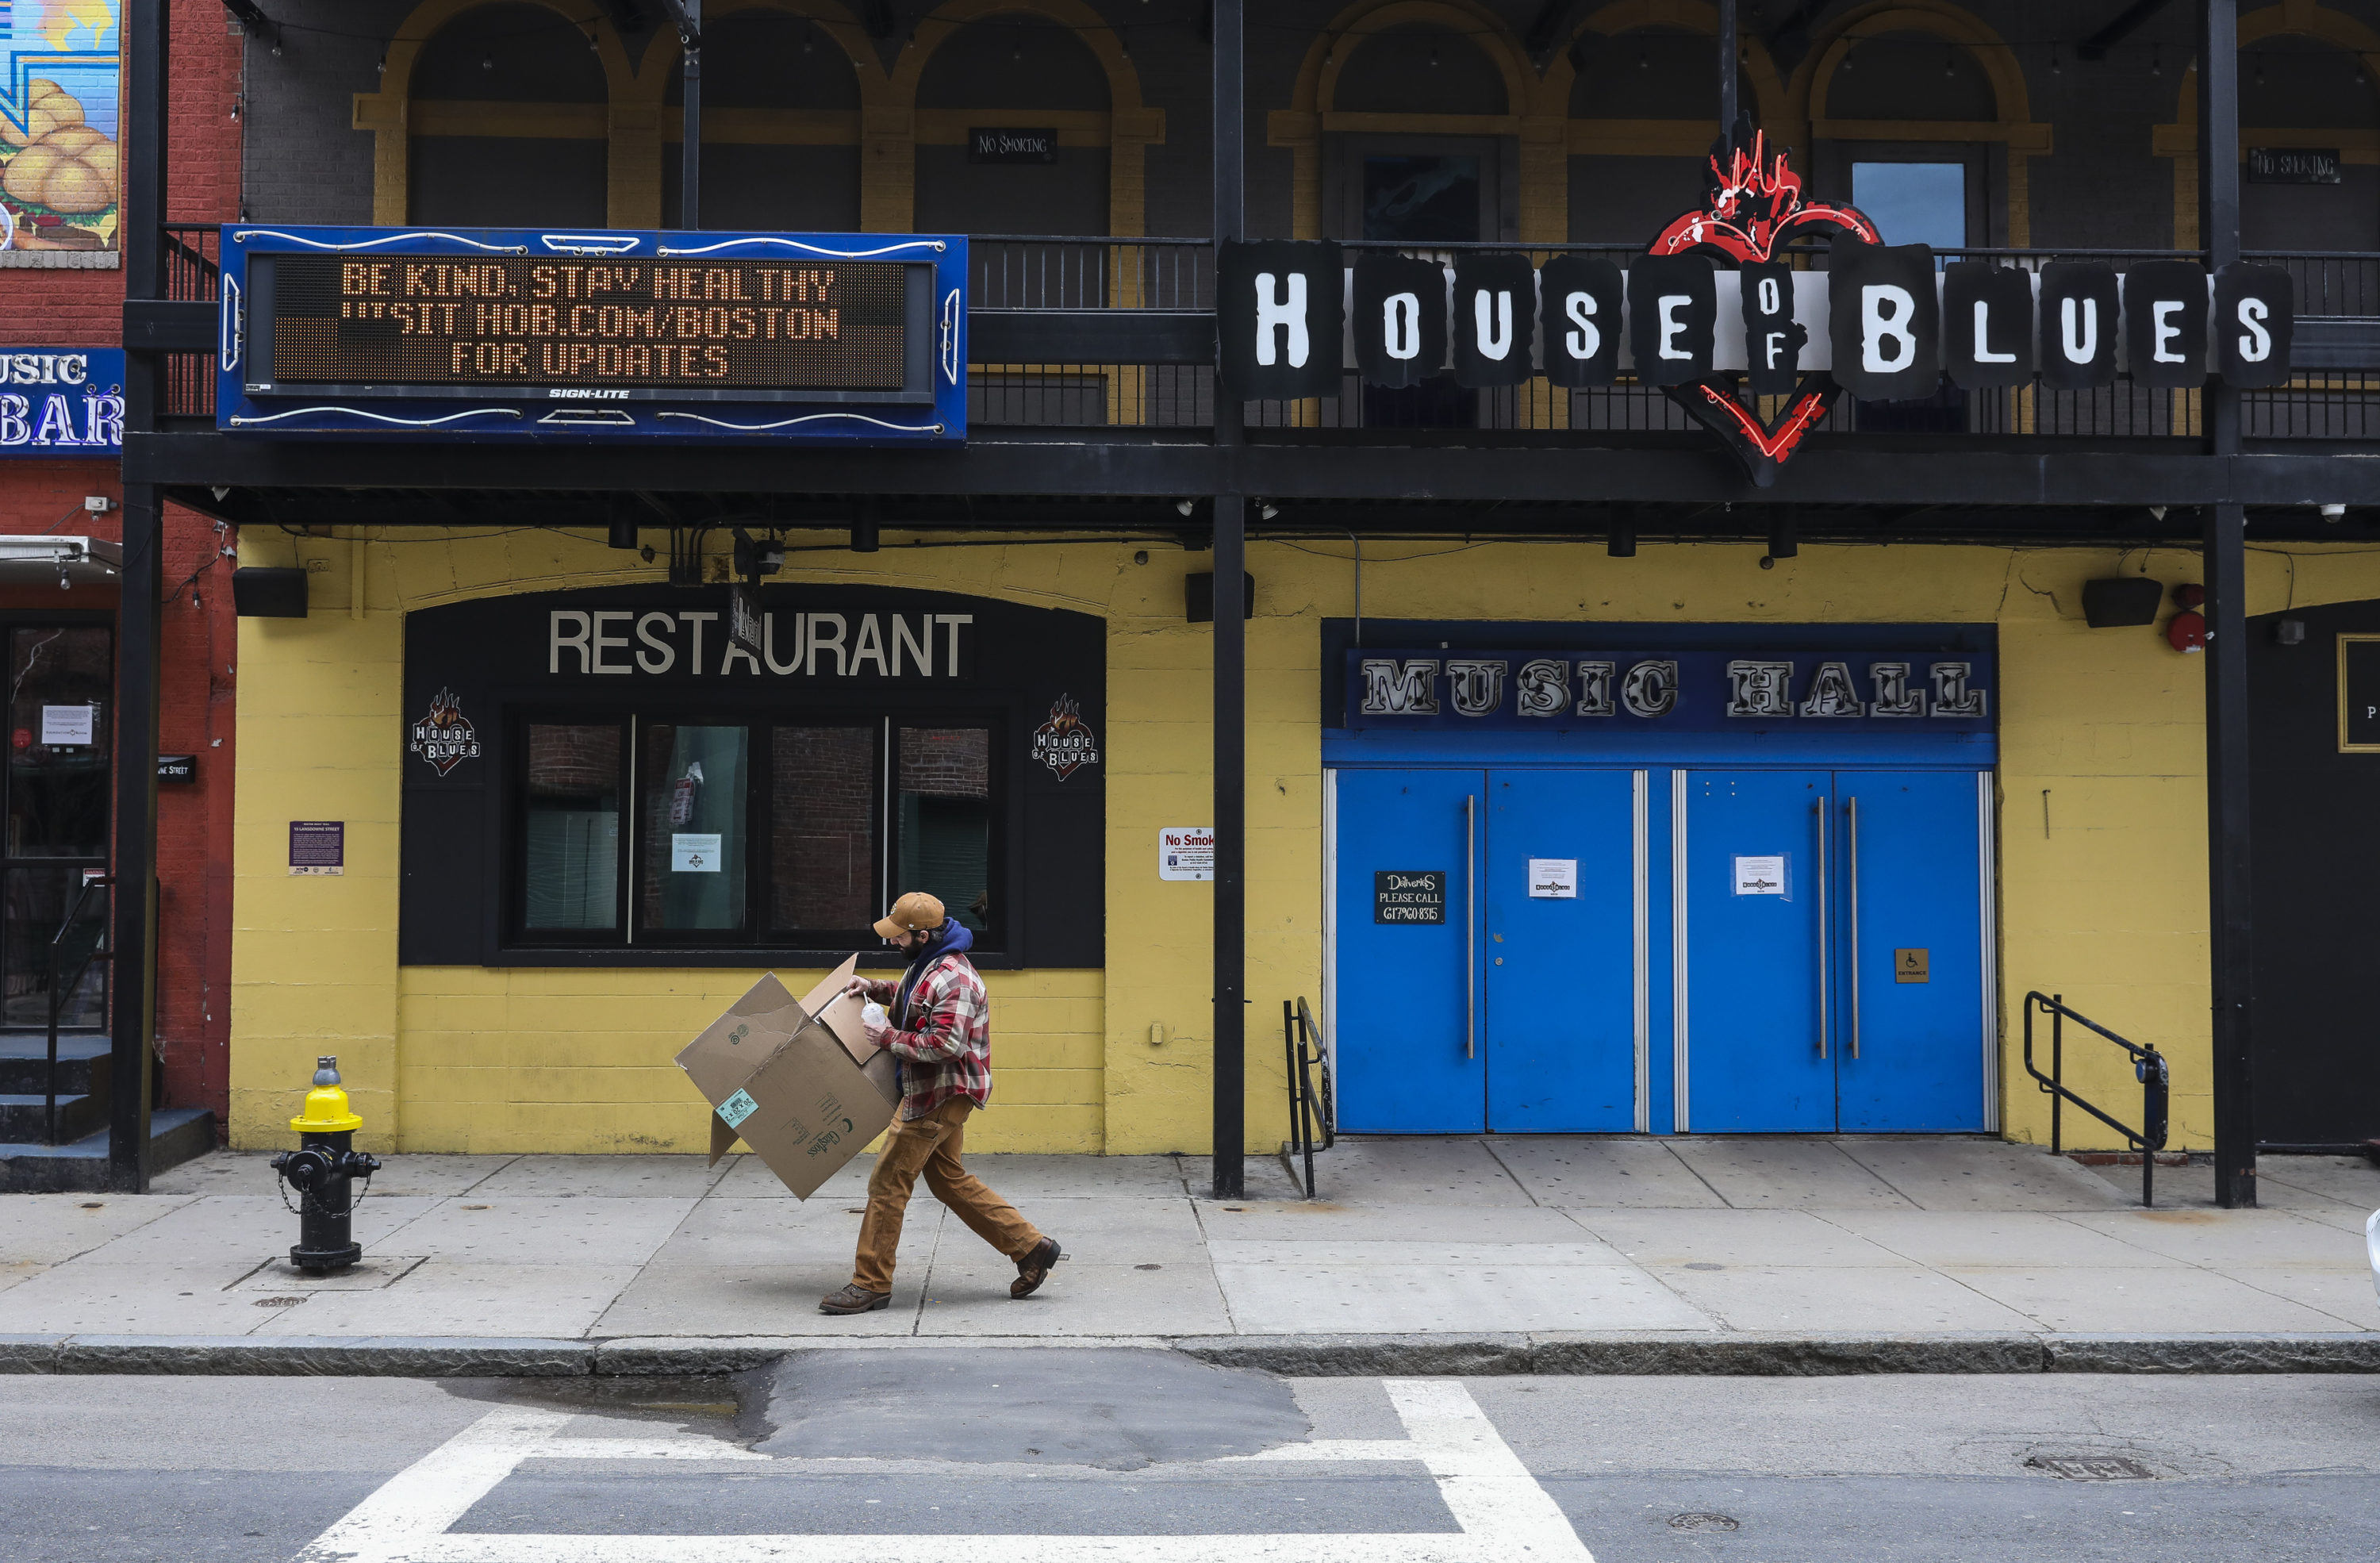 A man breaks down a cardboard box while walking past the House of Blues' COVID-19 sign urging people to be kind and stay healthy in April 2020. (Erin Clark/The Boston Globe via Getty Images)